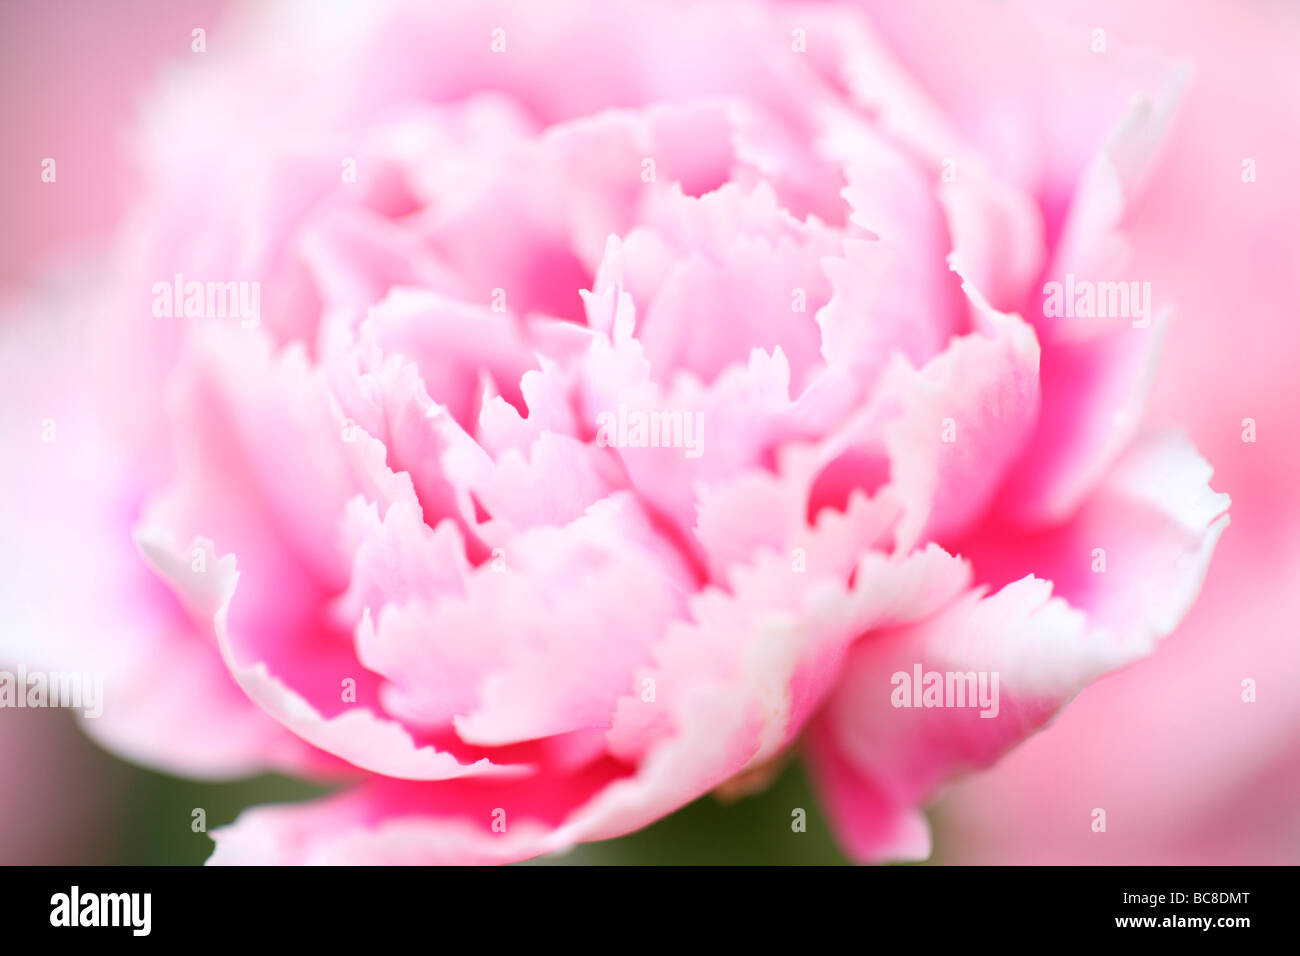 pink carnation fresh alluring charming full bloom fine art photography - Stock Image